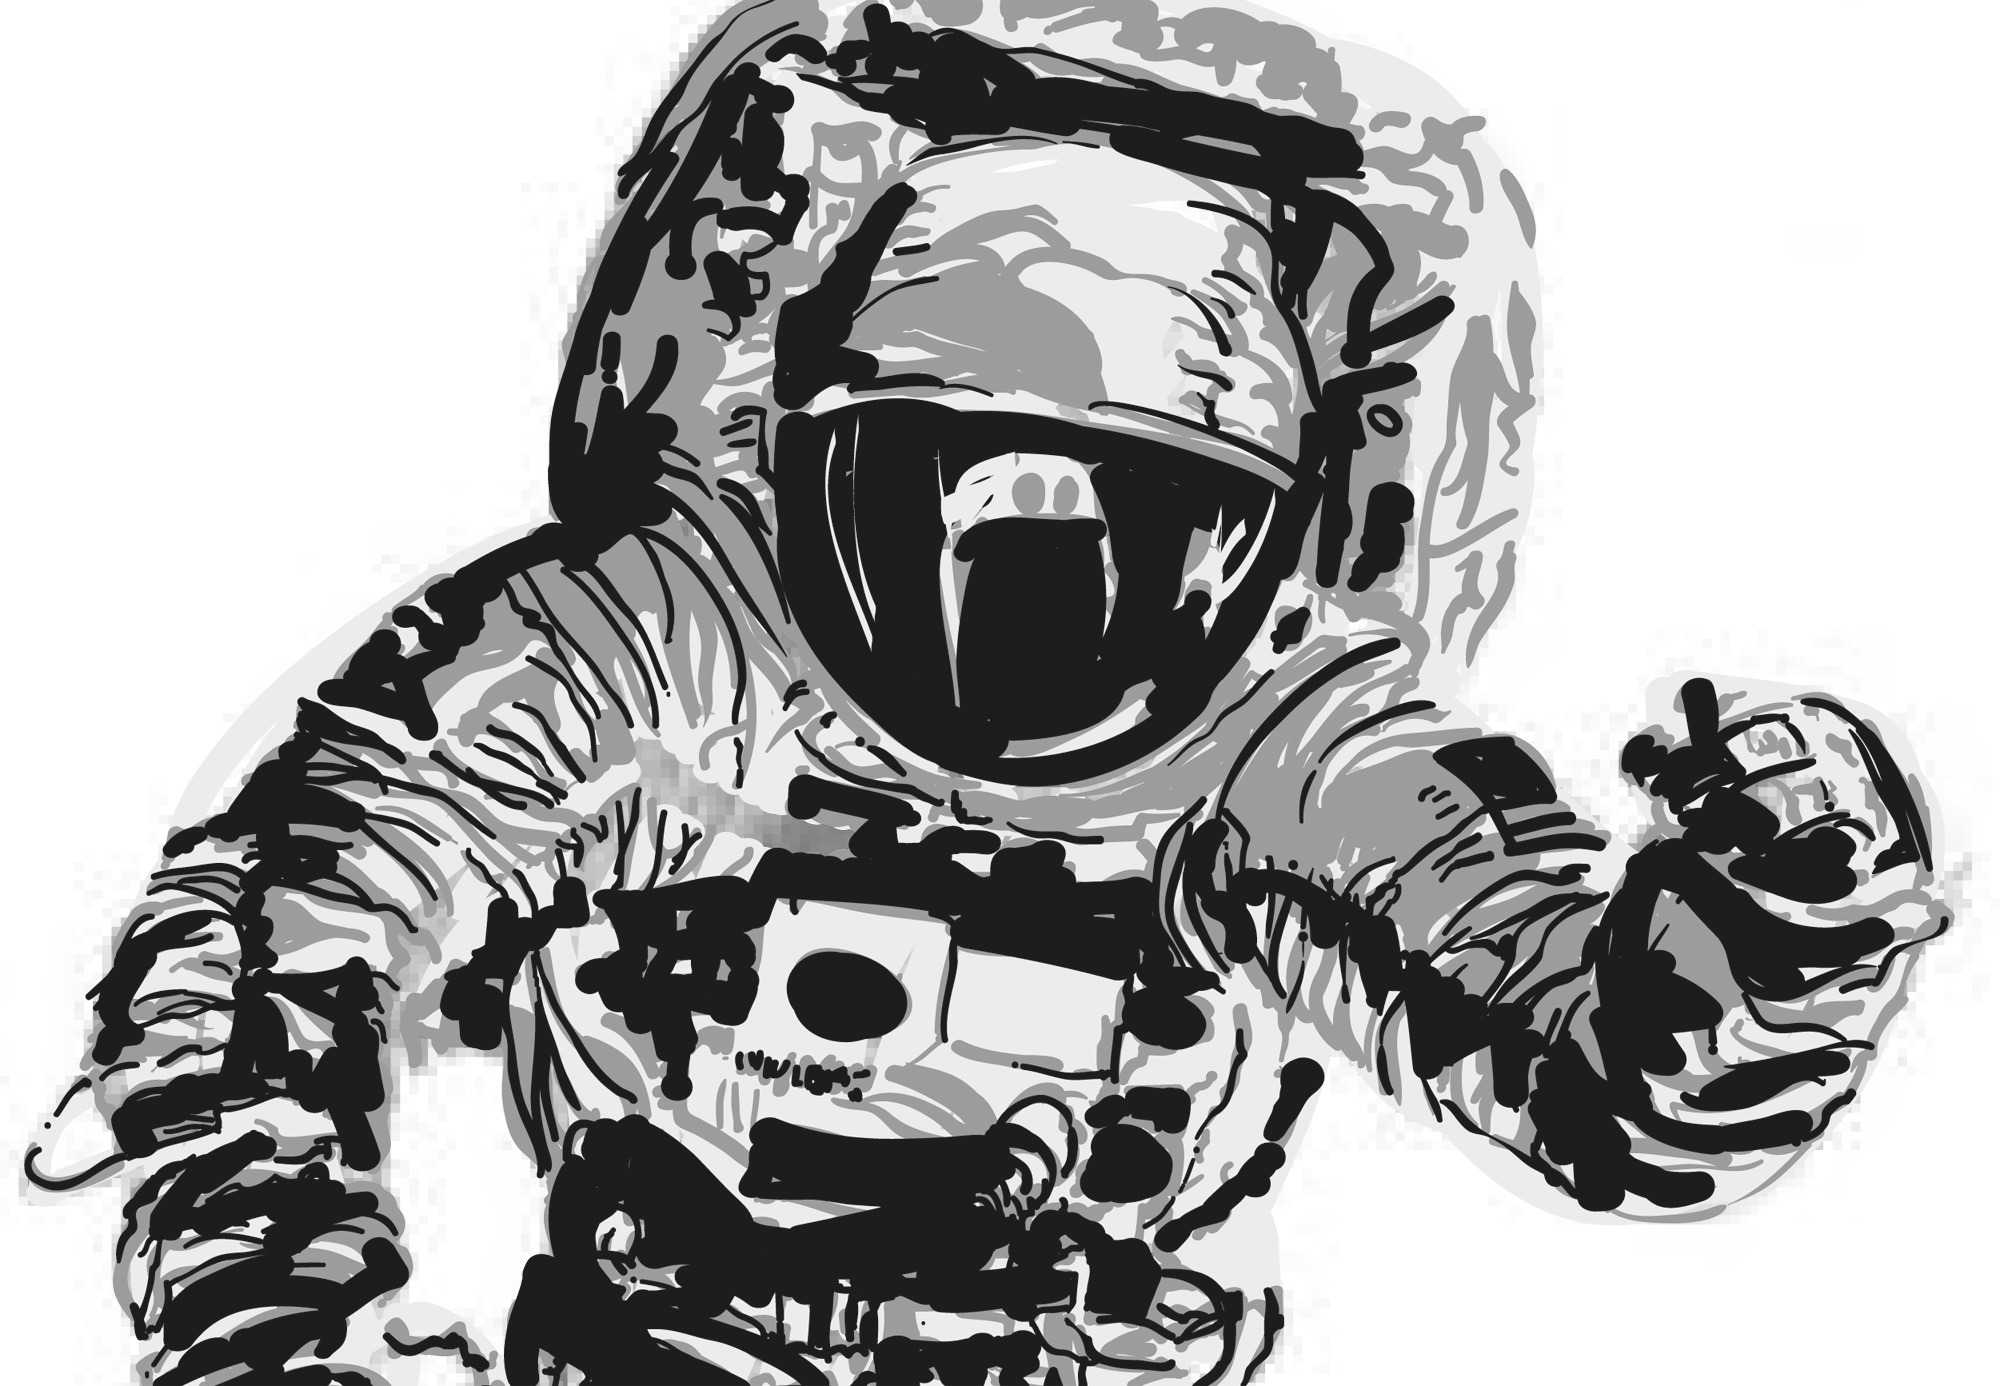 Drawn astronaut Drawing Art Astronaut Images Realistic